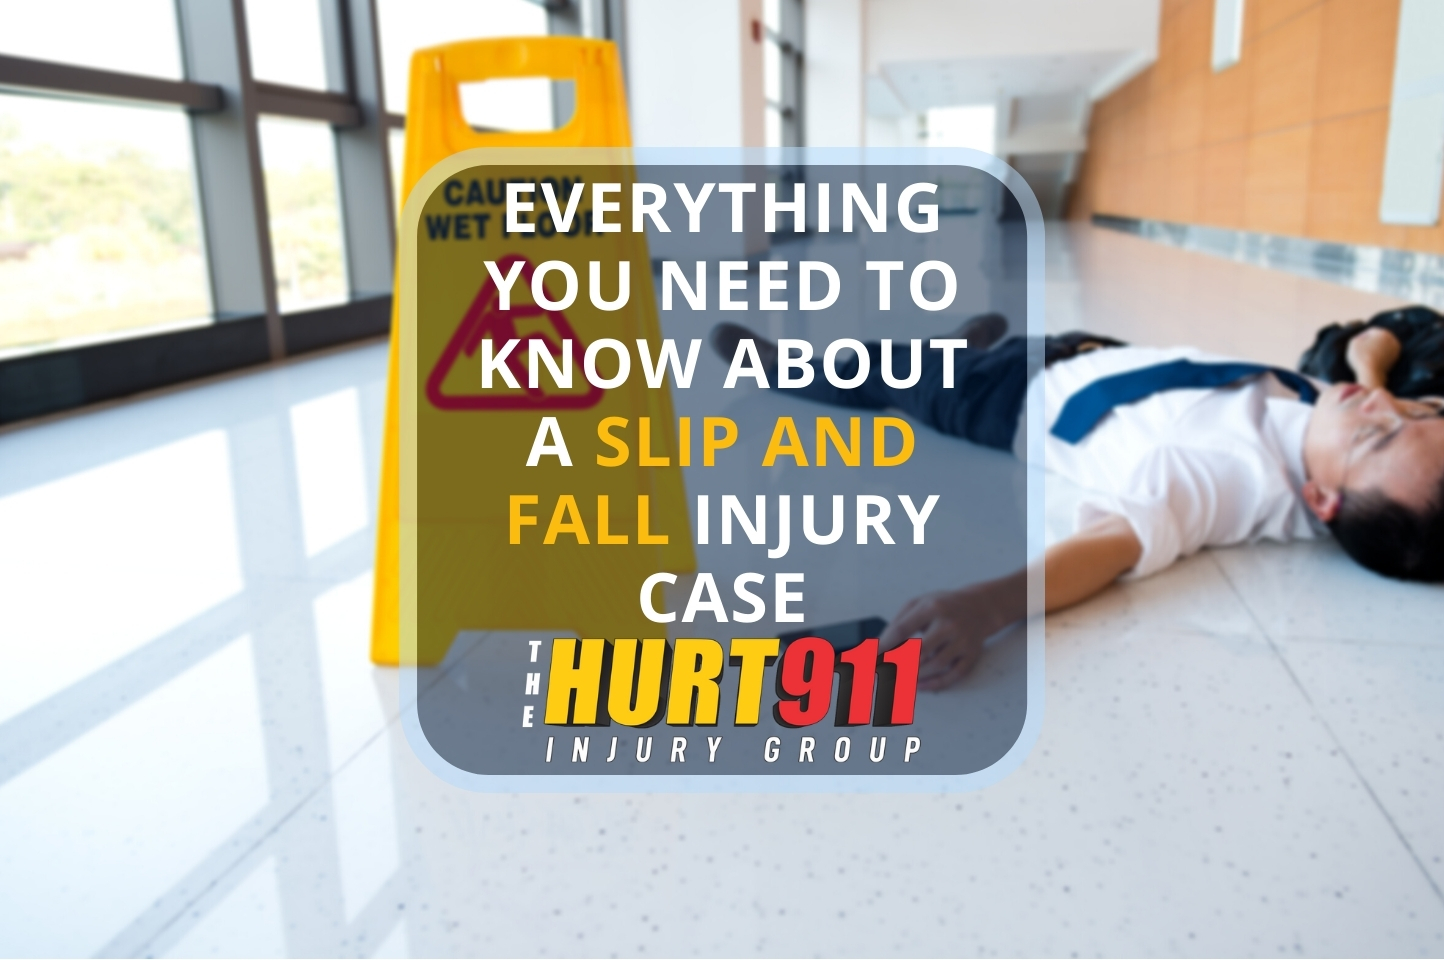 Everything You Need to Know About a Slip and Fall Injury Case